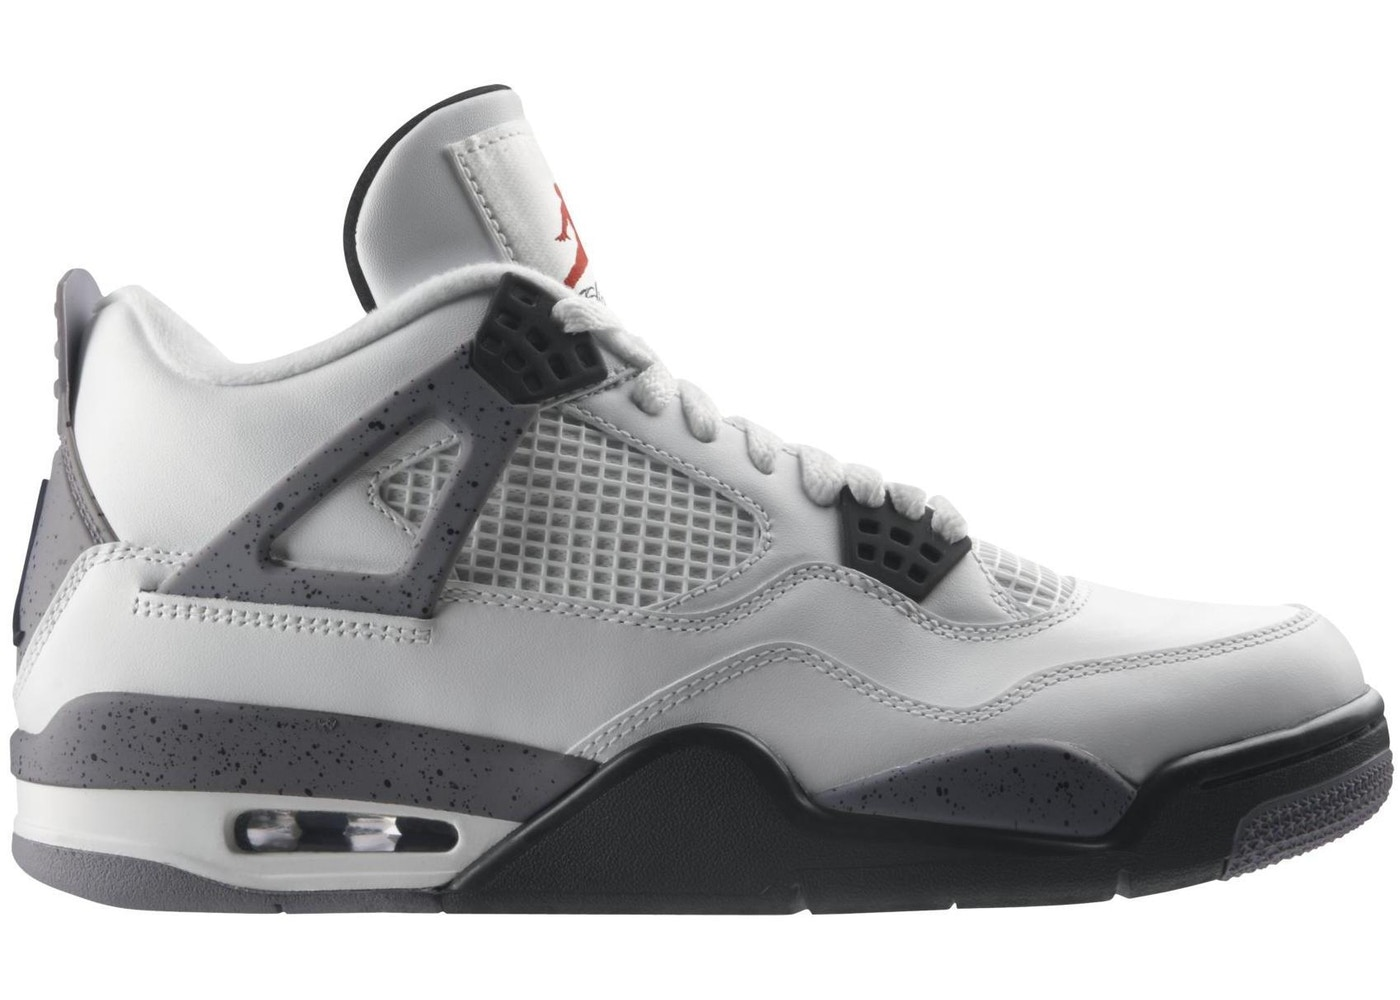 2e89df27e4ef Jordan 4 Retro White Cement (2012) - 308497-103